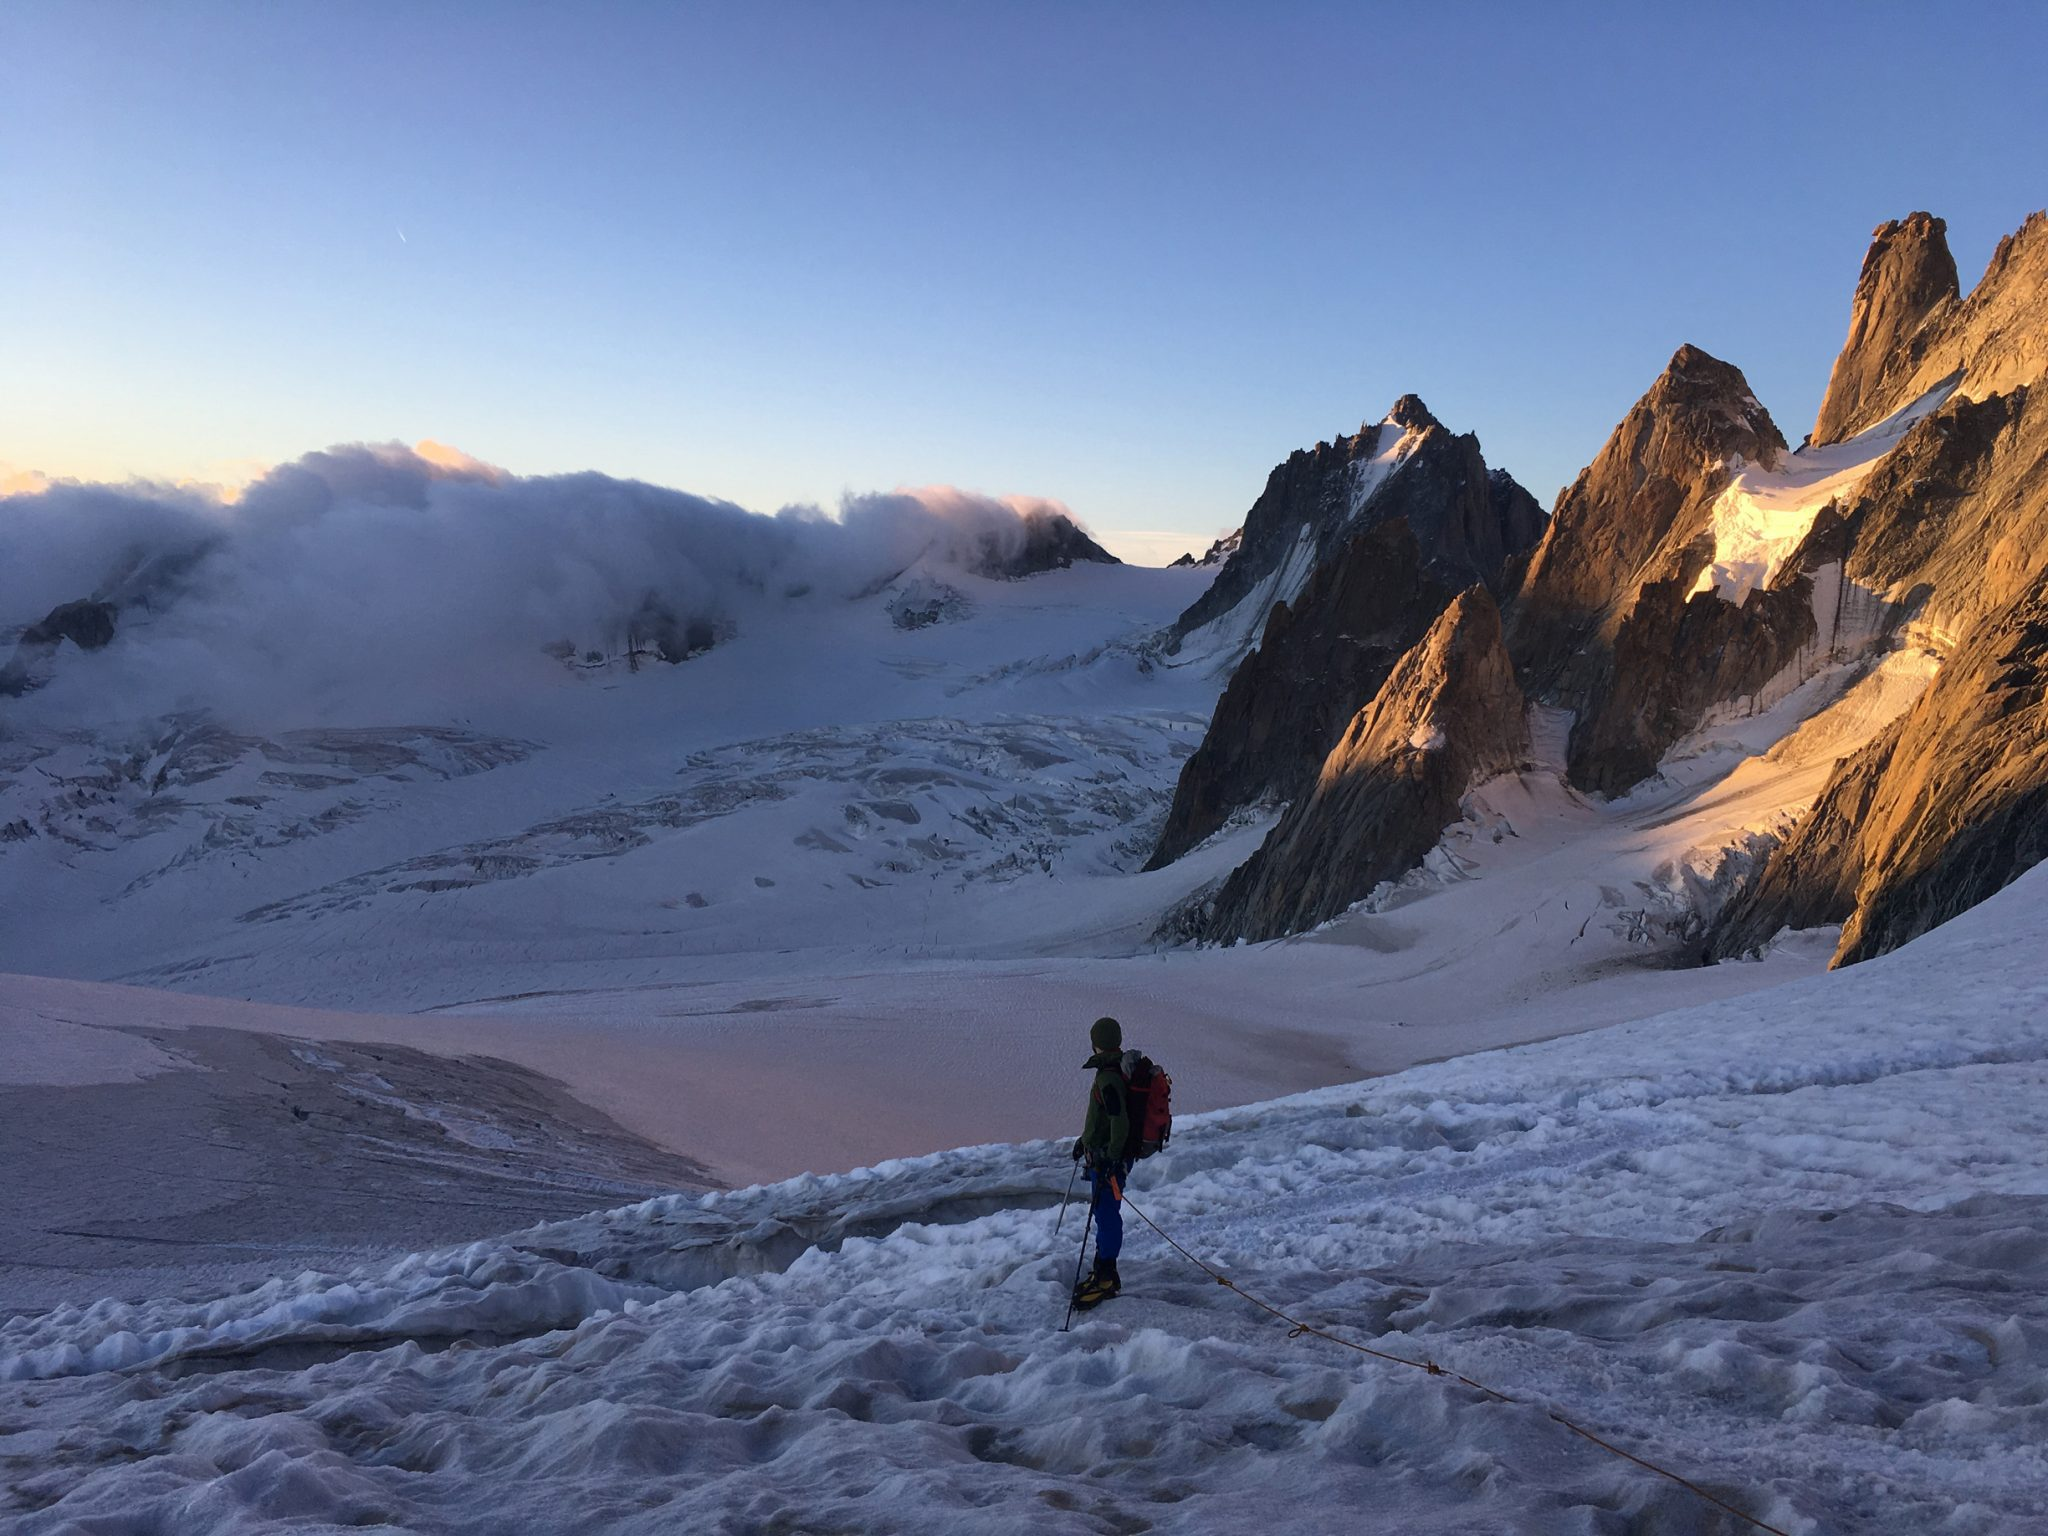 On the glacier in the Vallee Blanche